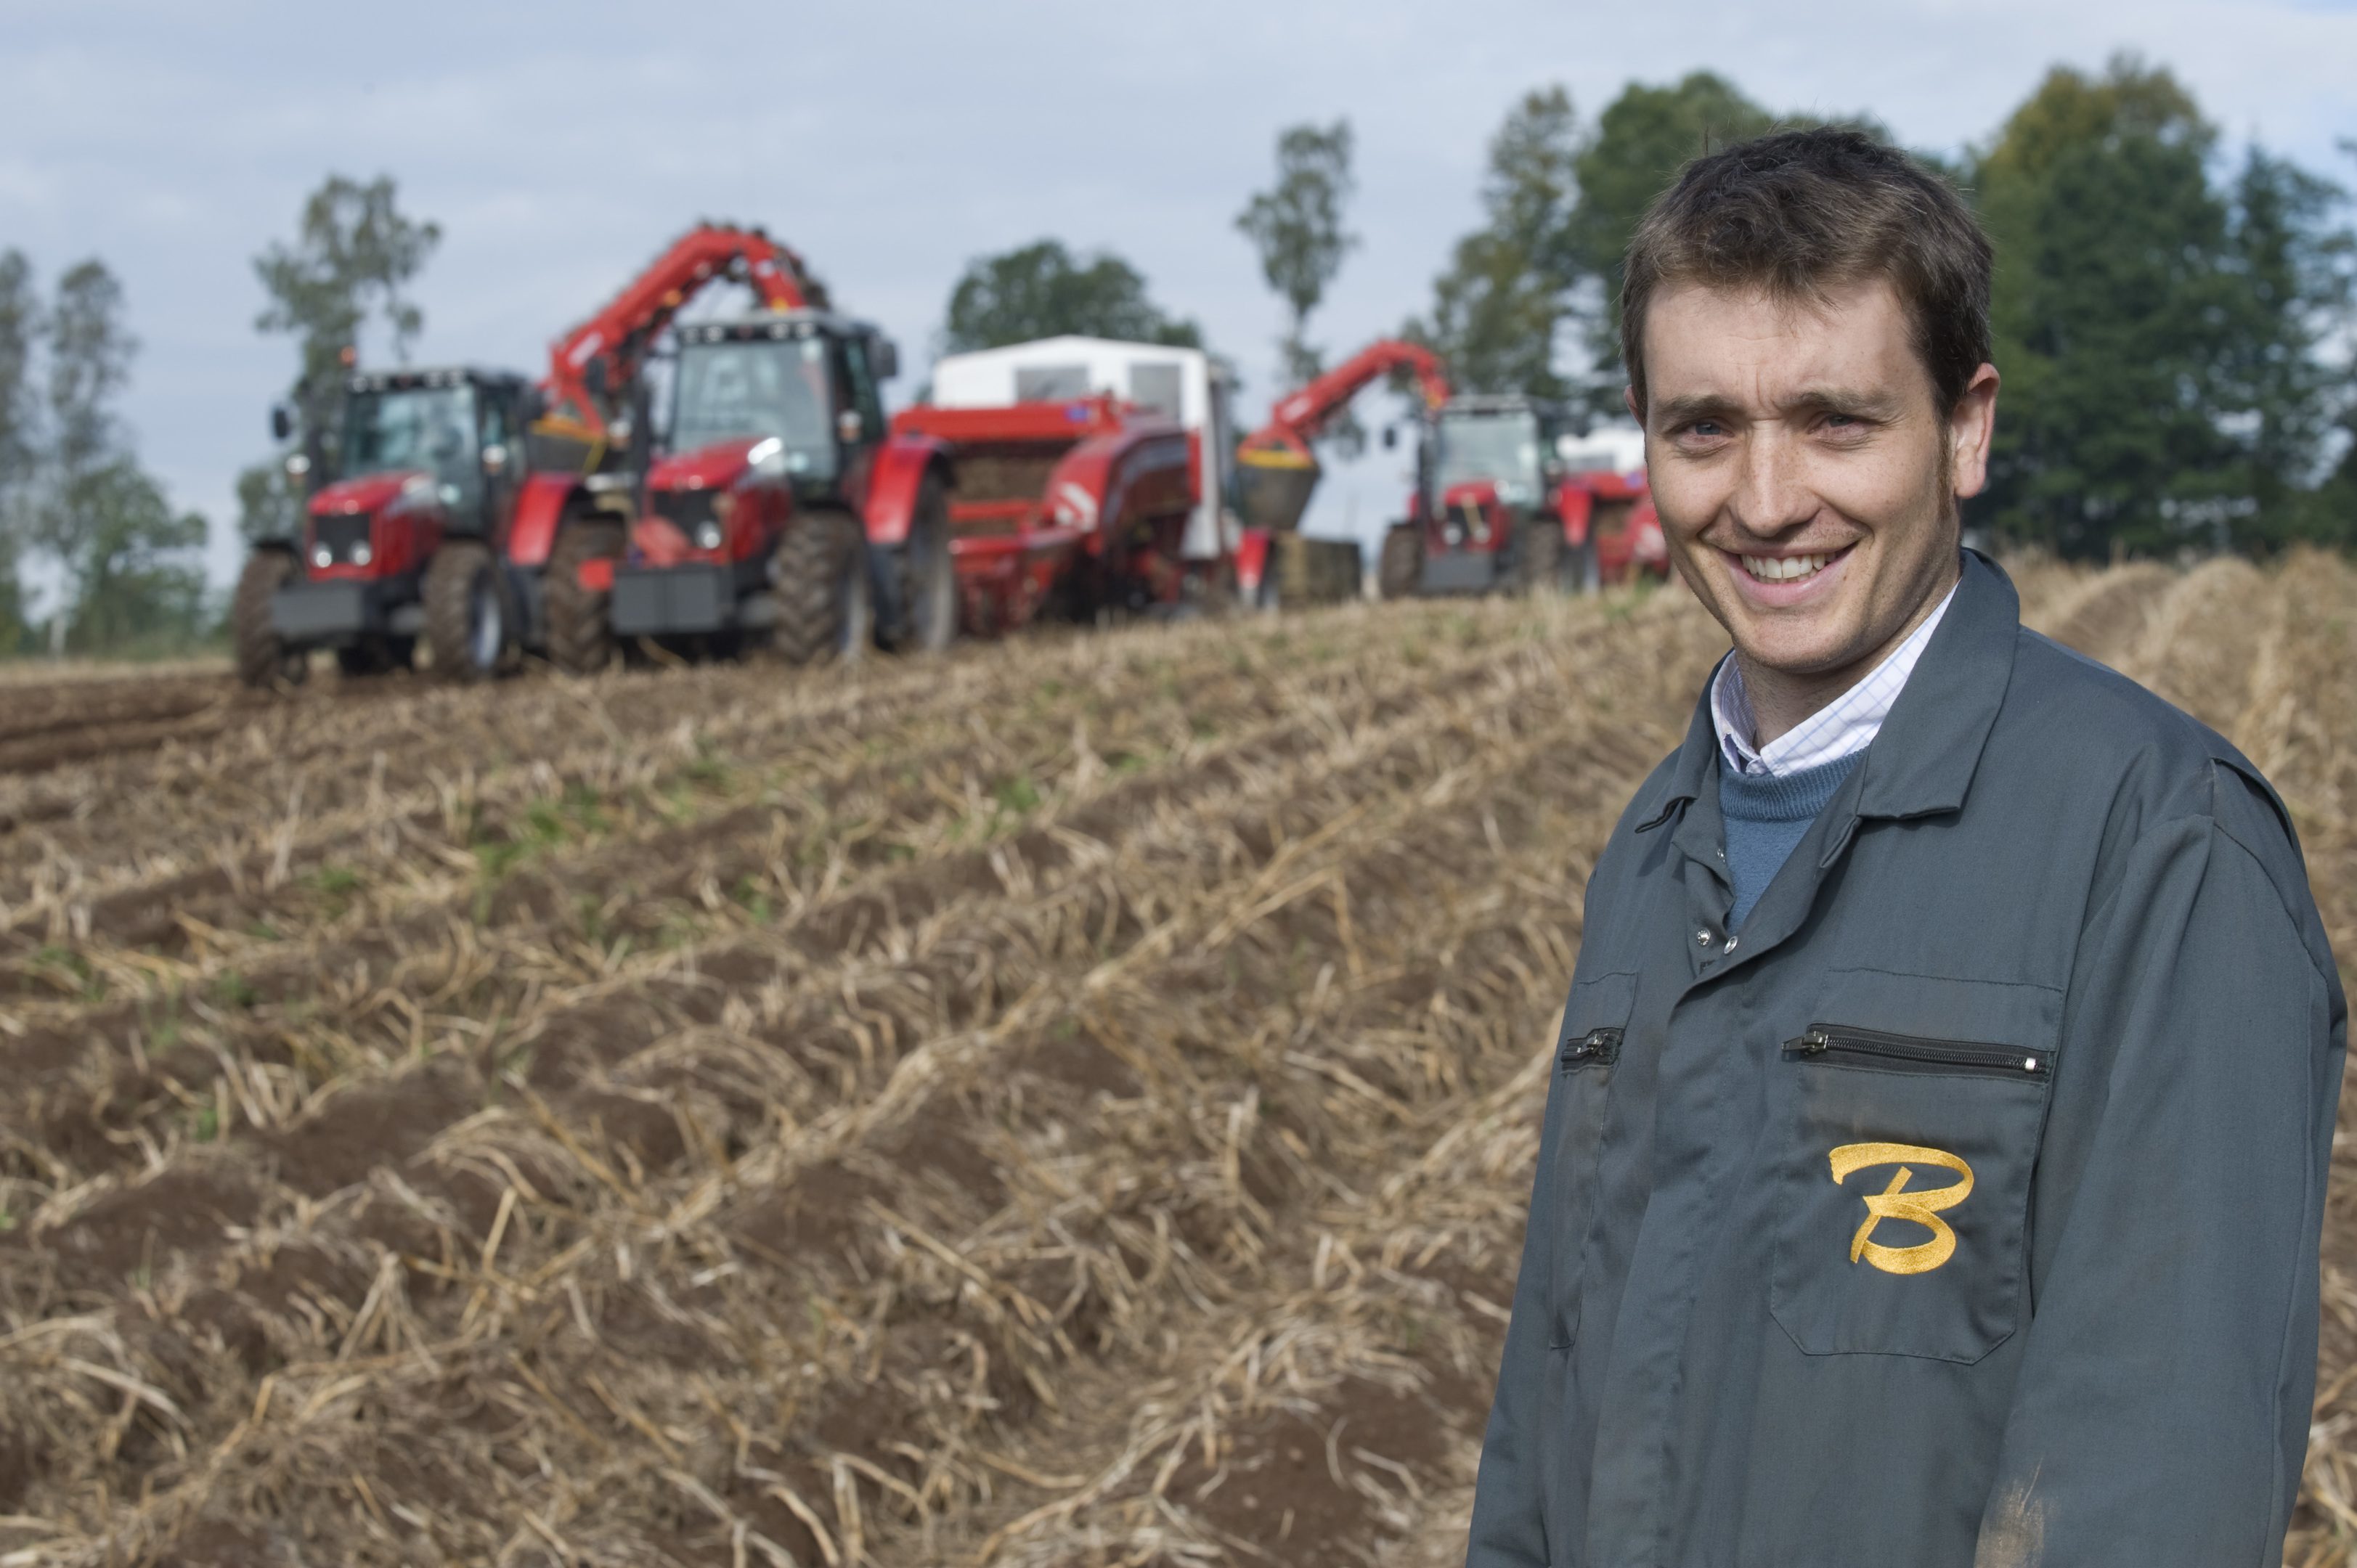 Bruce Farms is the venue for a series of commercial-scale field trials